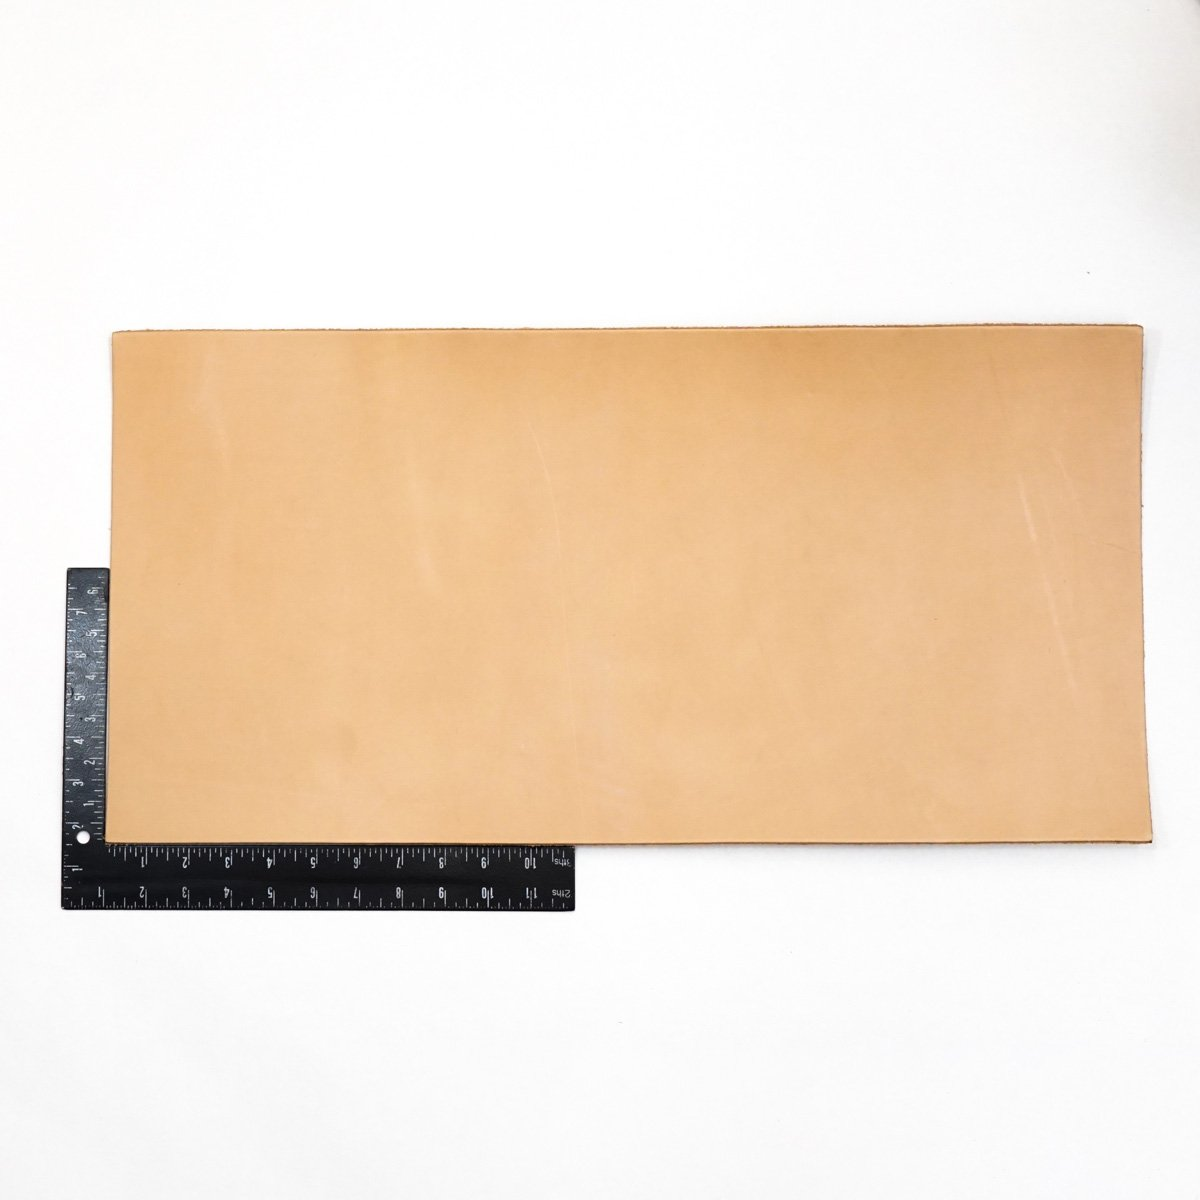 Springfield Leather Company 12 inch x 24 inch Pre-Cut Hermann Oak Vegetable Tan Cowhide Leather Tooling Pieces 4-5oz